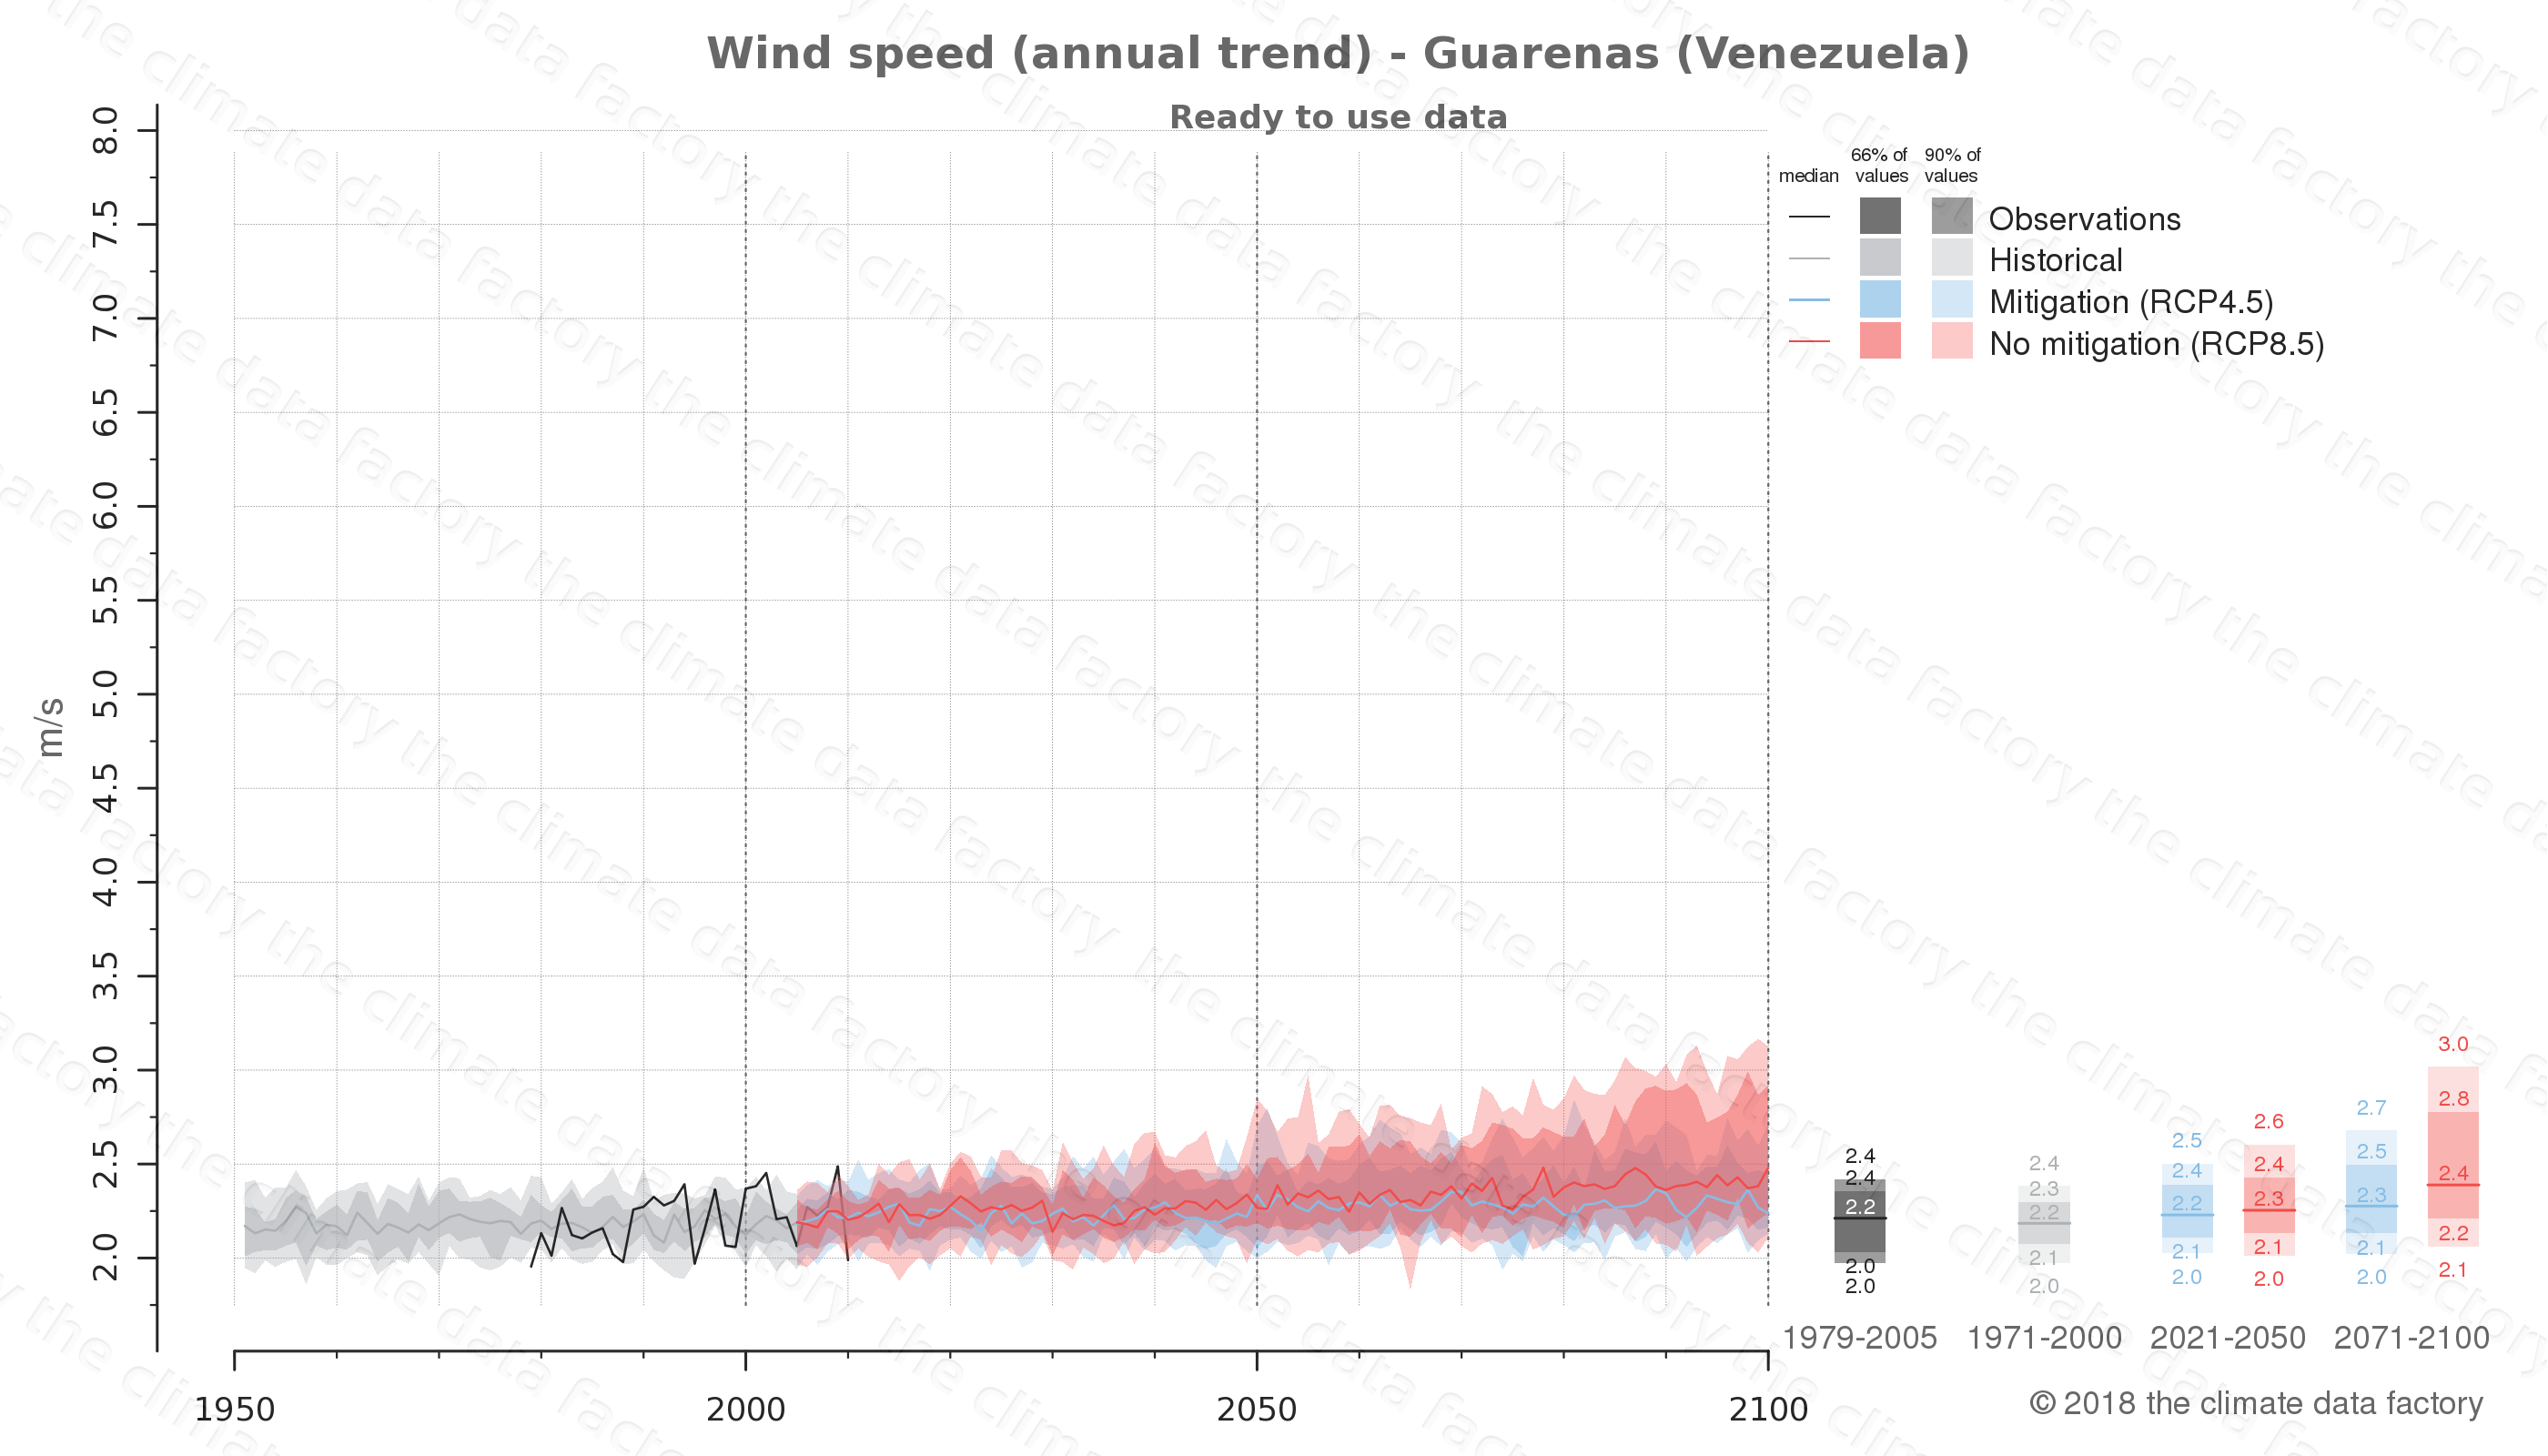 climate change data policy adaptation climate graph city data wind-speed guarenas venezuela